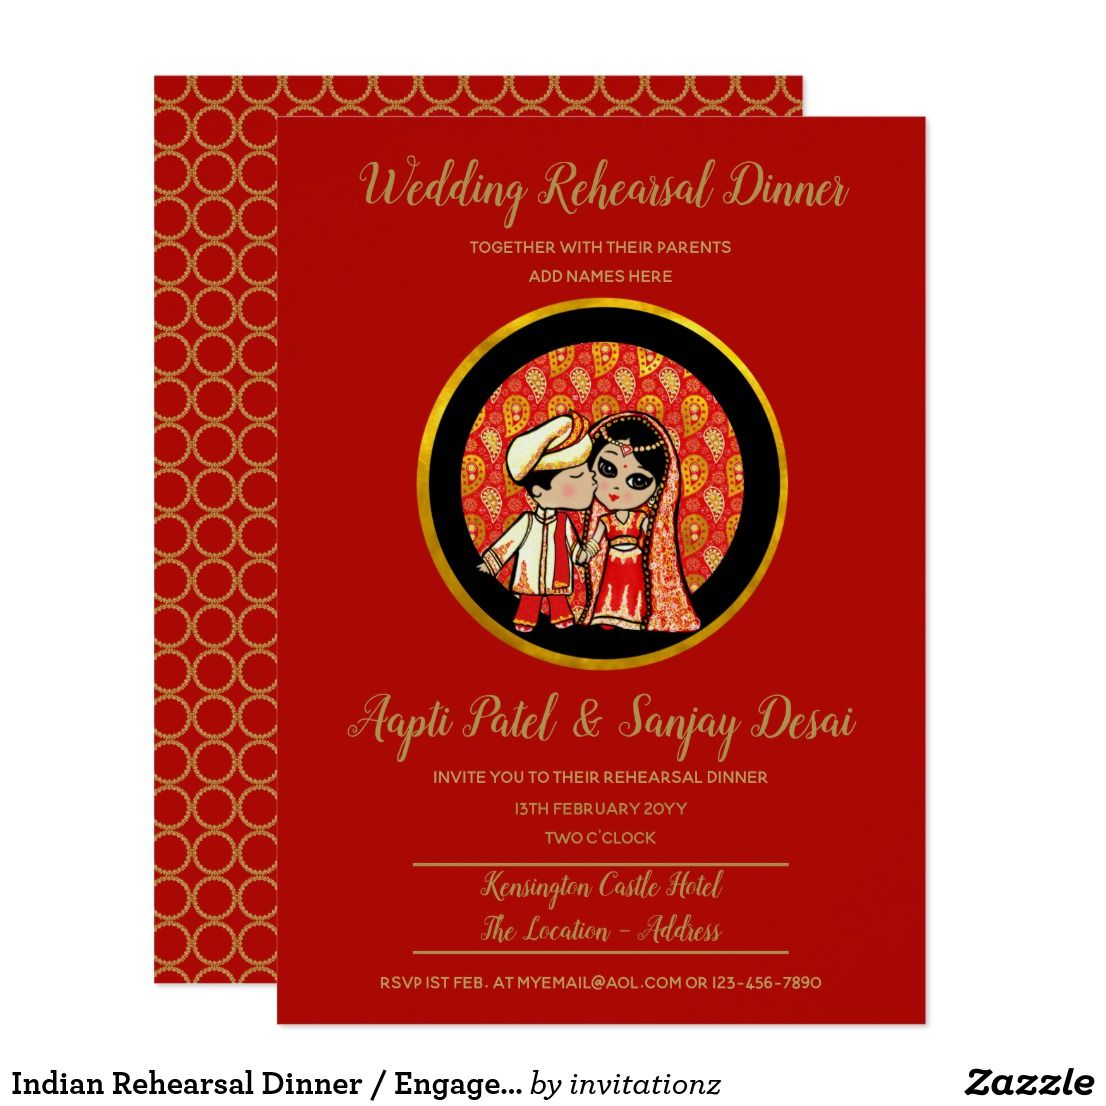 Indian Rehearsal Dinner / Engagement Cute Red Gold Invitation ...